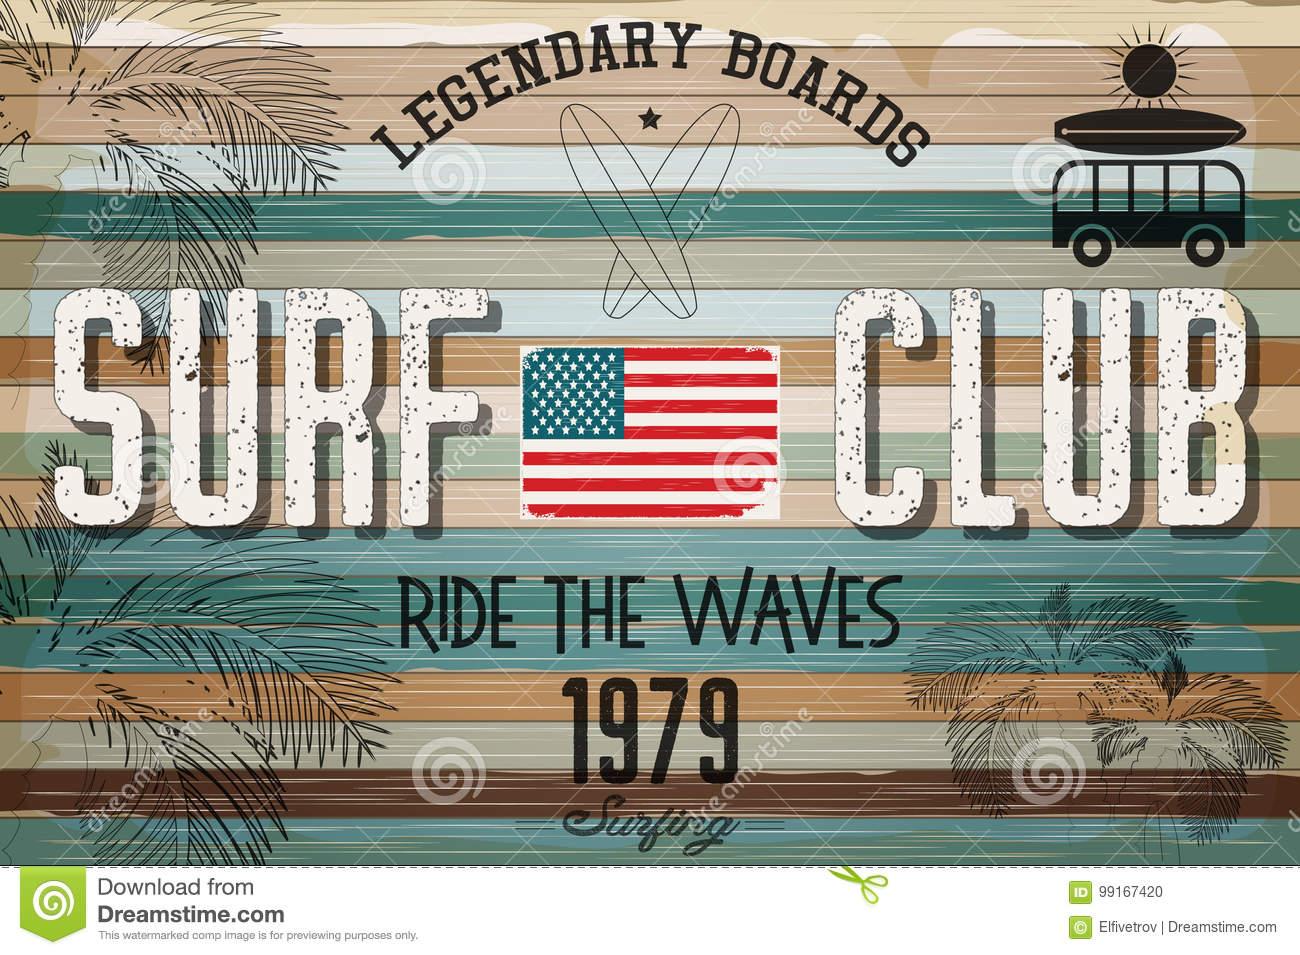 b073074127 Retro Grunge Surfing Poster Stock Vector - Illustration of beach ...